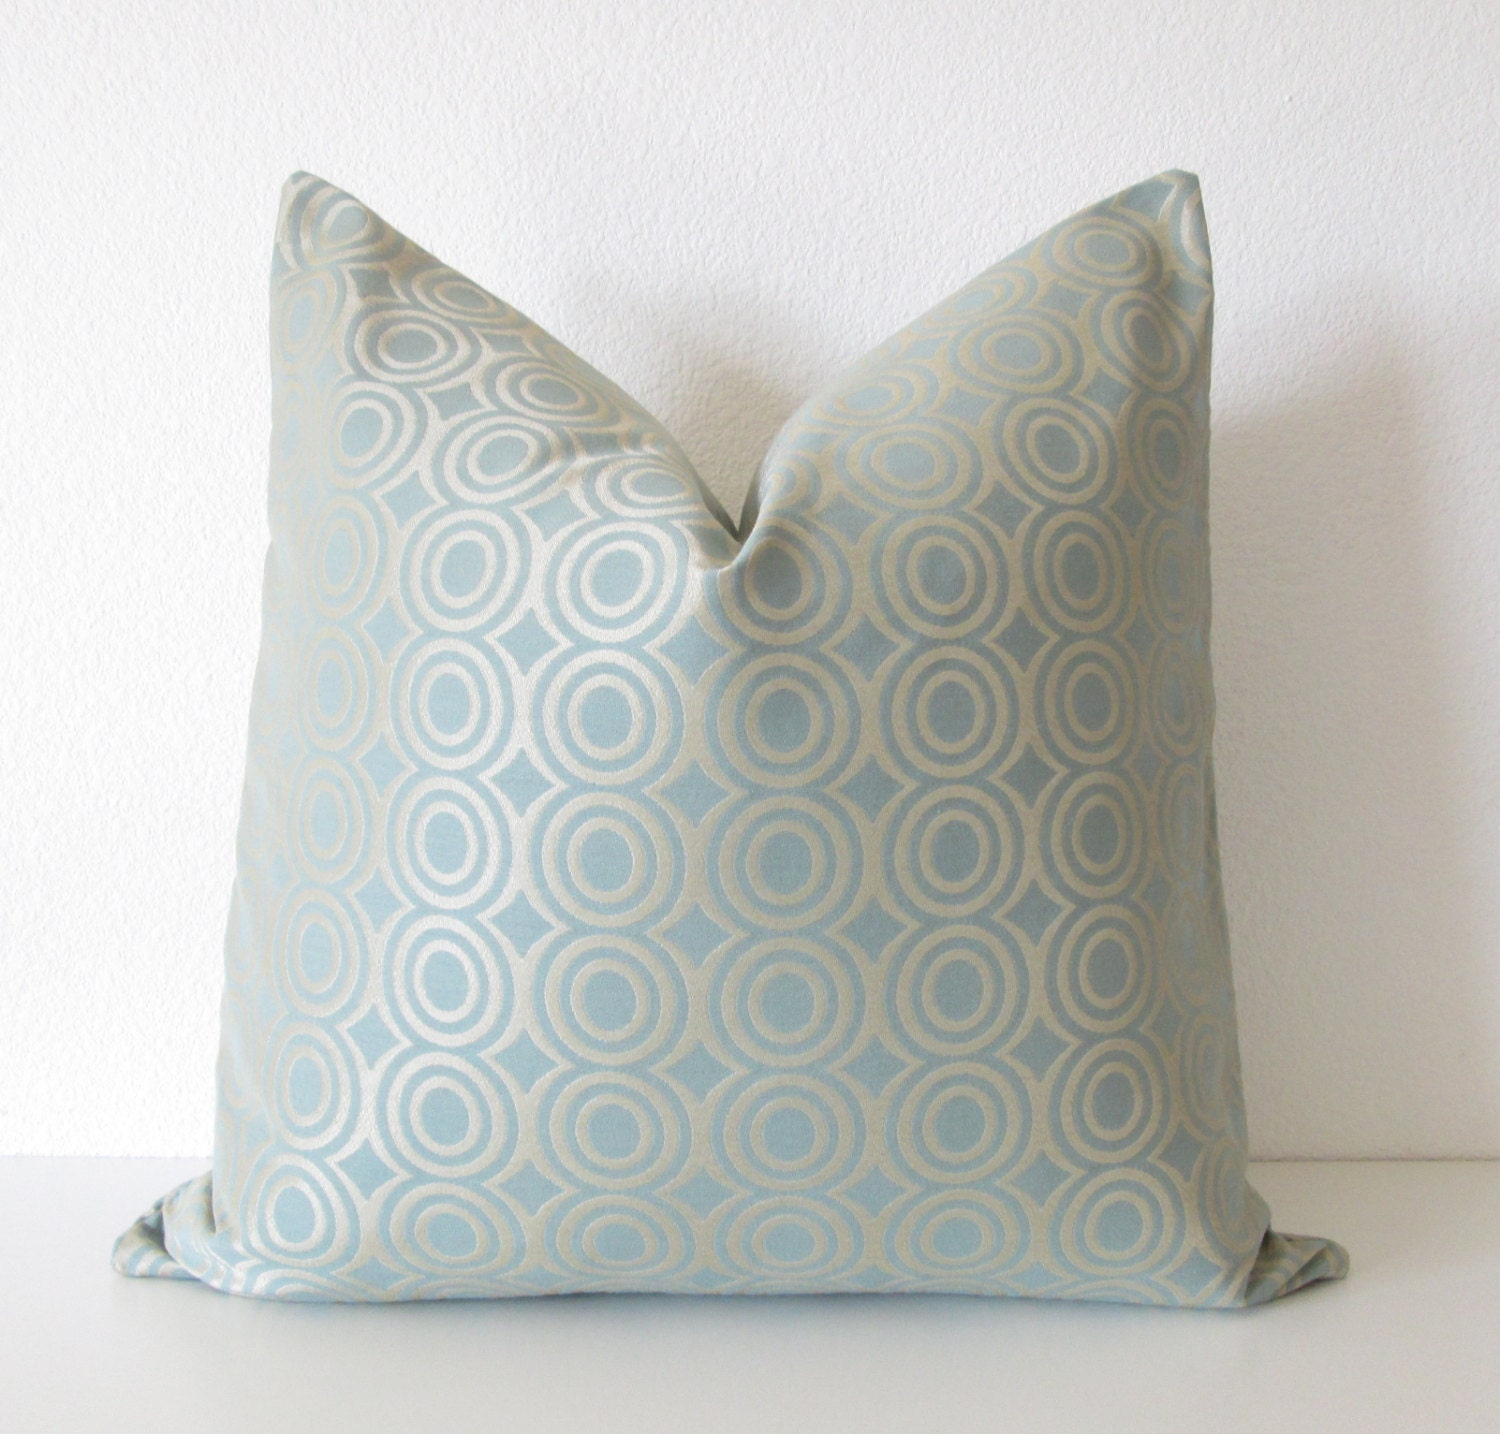 Light Blue And Gold Throw Pillows : Candice Olson light blue gold circles designer throw pillow